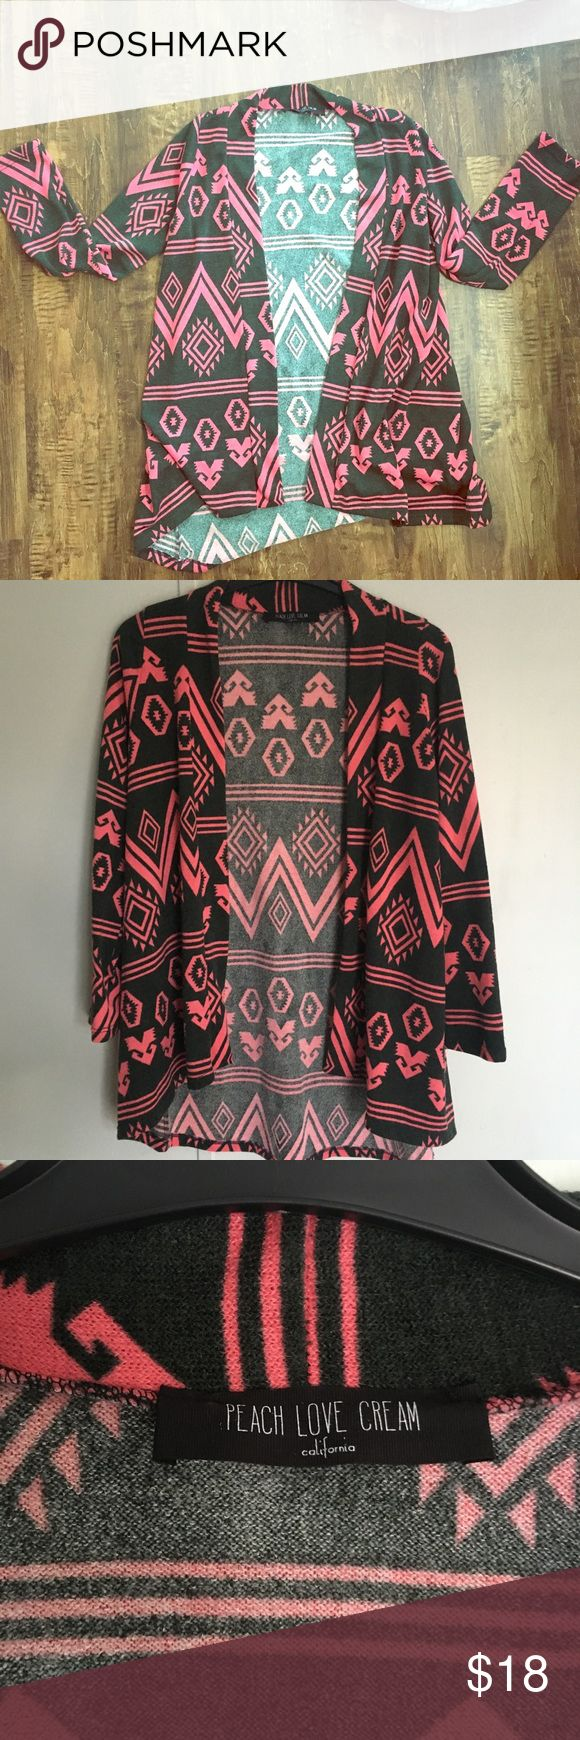 Tribal print cardigan Tribal print cardigan with coral pink and a greenish black color Great condition... there is no tag with the size, but I generally wear a medium, and it fit well. Peach Love California Sweaters Cardigans